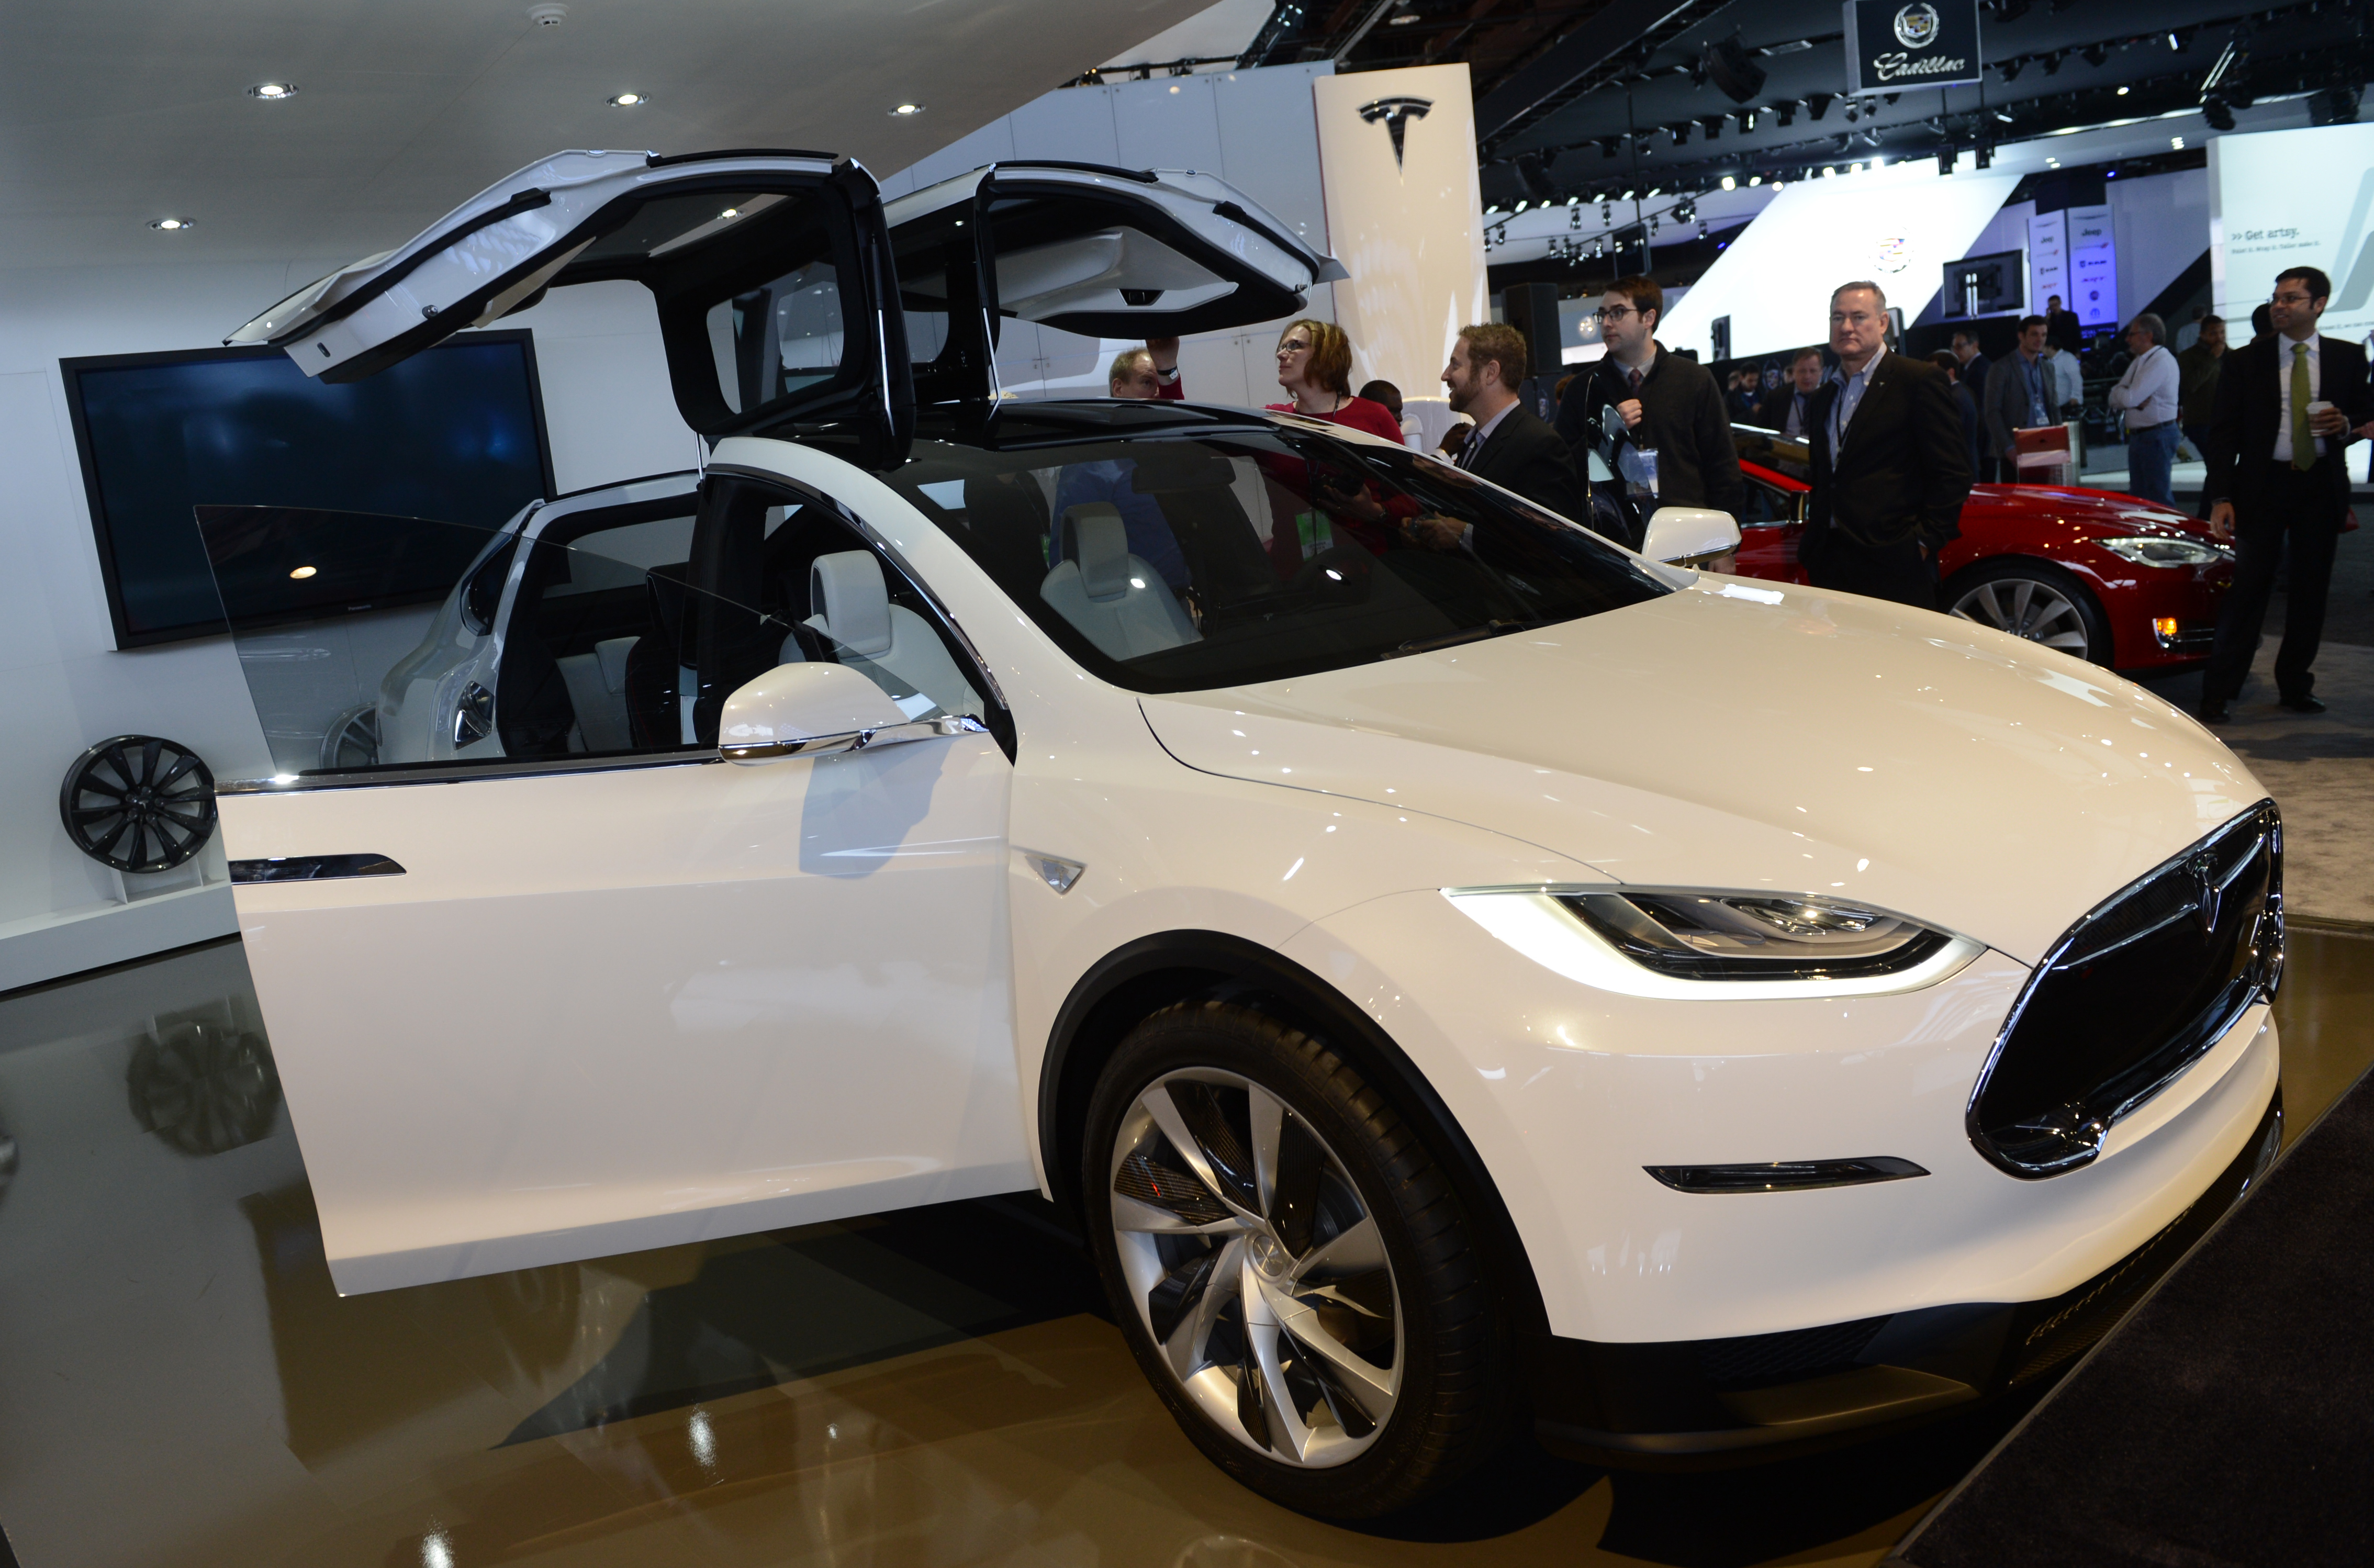 The Tesla Model X is introduced at the 2013 North American International Auto Show in Detroit, Michigan, January 15, 2013.